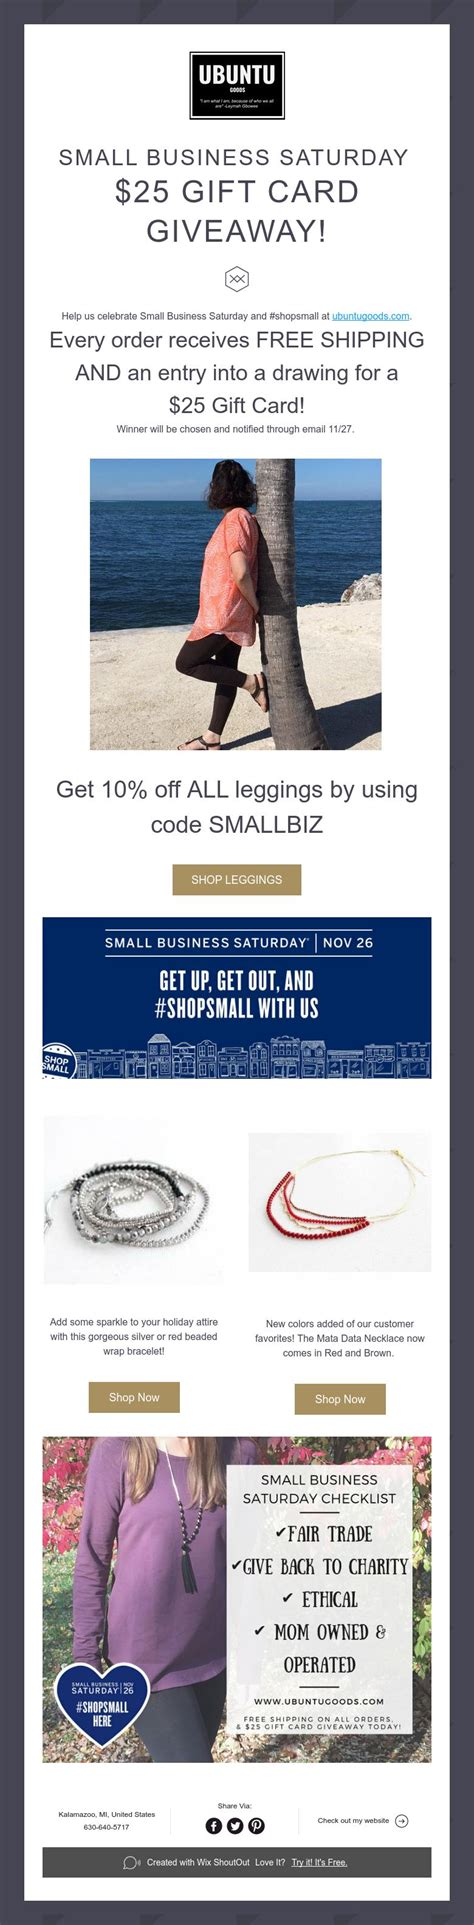 Can i purchase a gift card from wix? Small Business Saturday $25 Gift Card Giveaway! | Gift card giveaway, Small business saturday ...